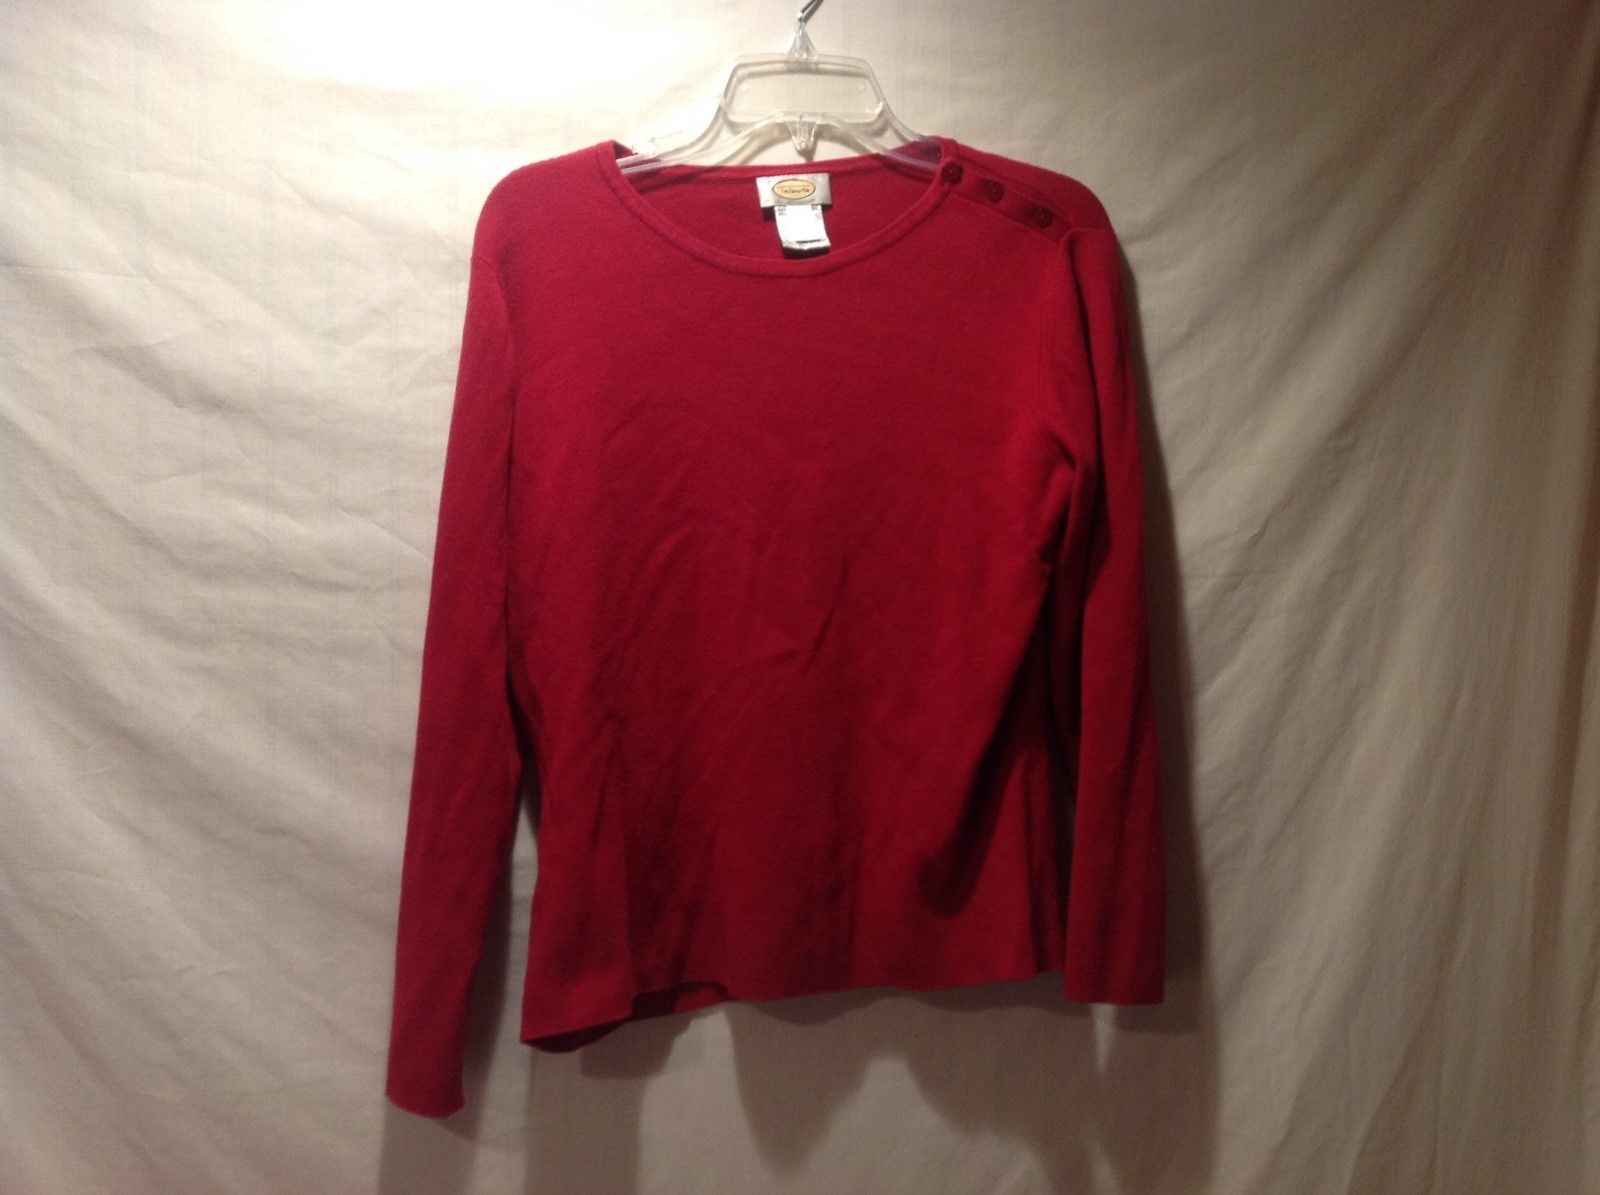 Talbots Red Long Sleeved Shirt Size Medium